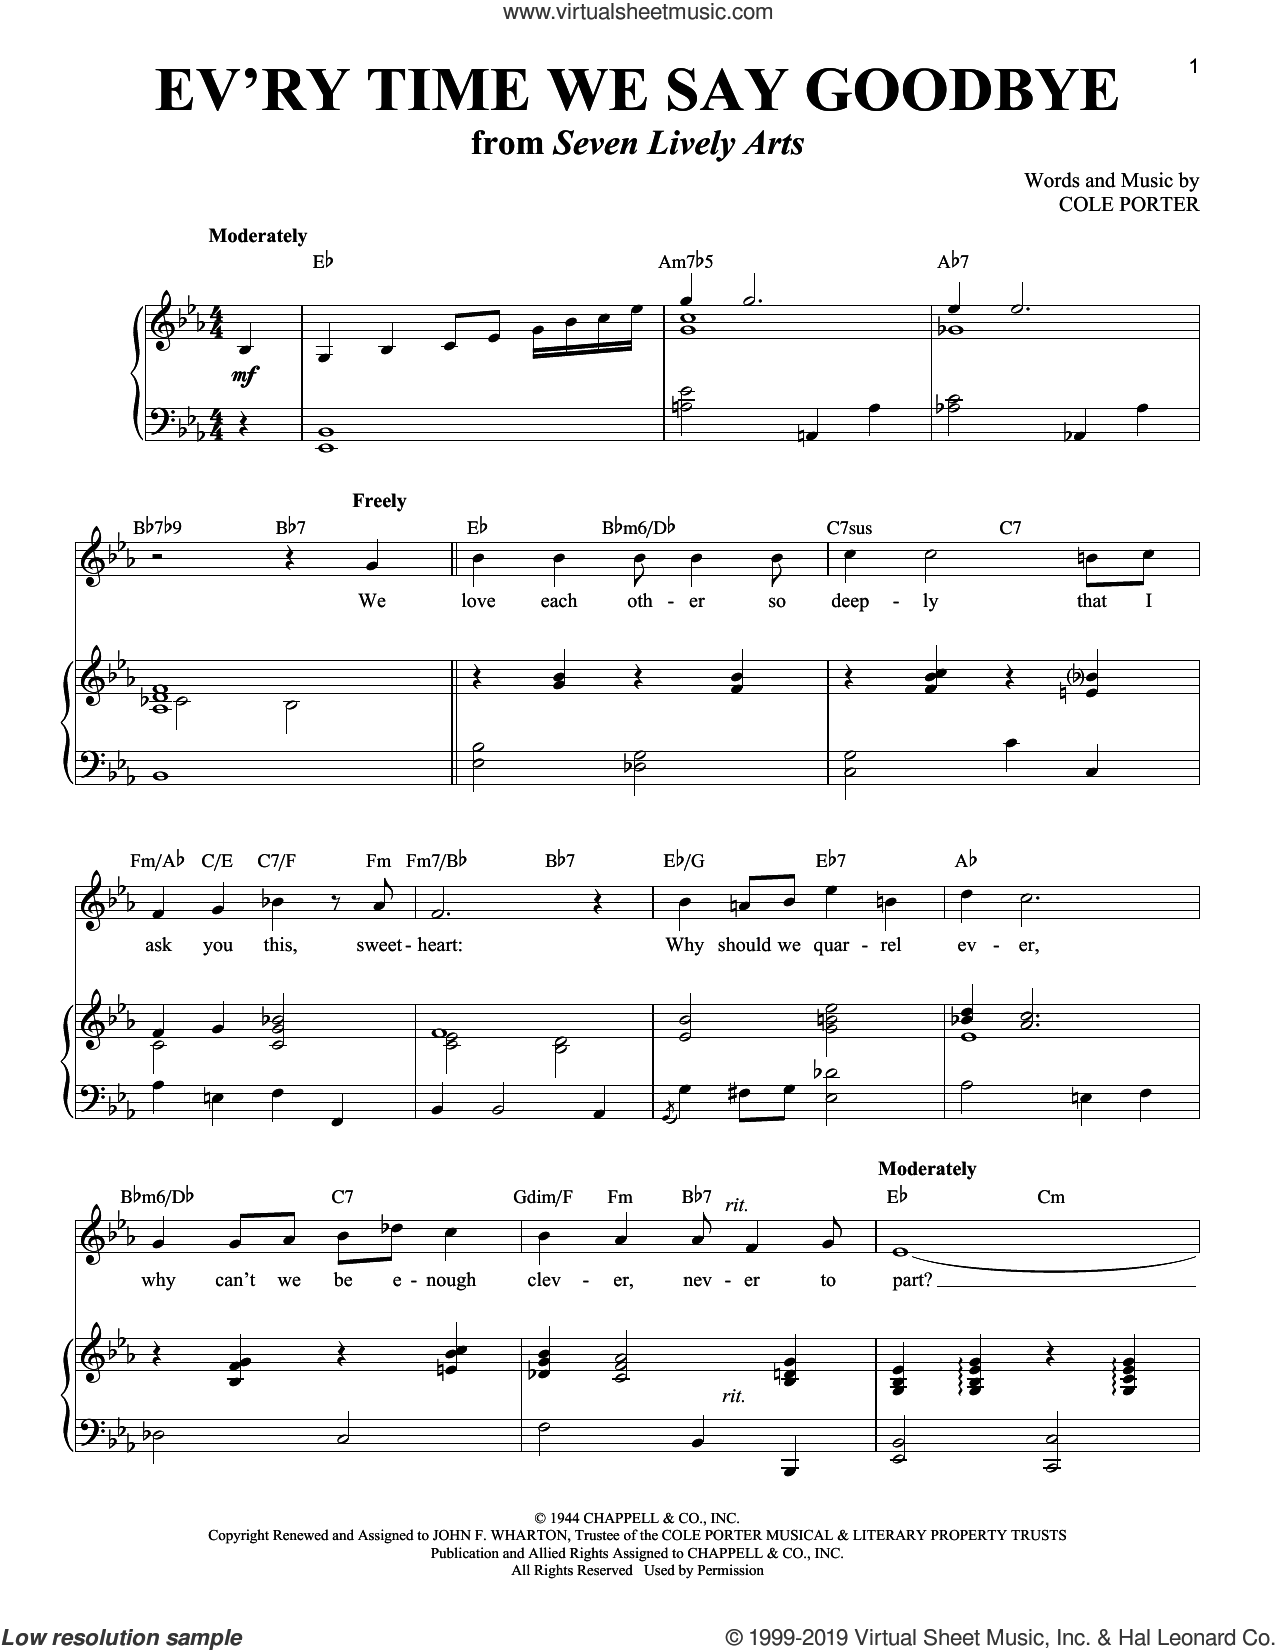 Ev'ry Time We Say Goodbye sheet music for voice and piano (Tenor) , Stan Kenton, Richard Walters and Cole Porter, intermediate skill level